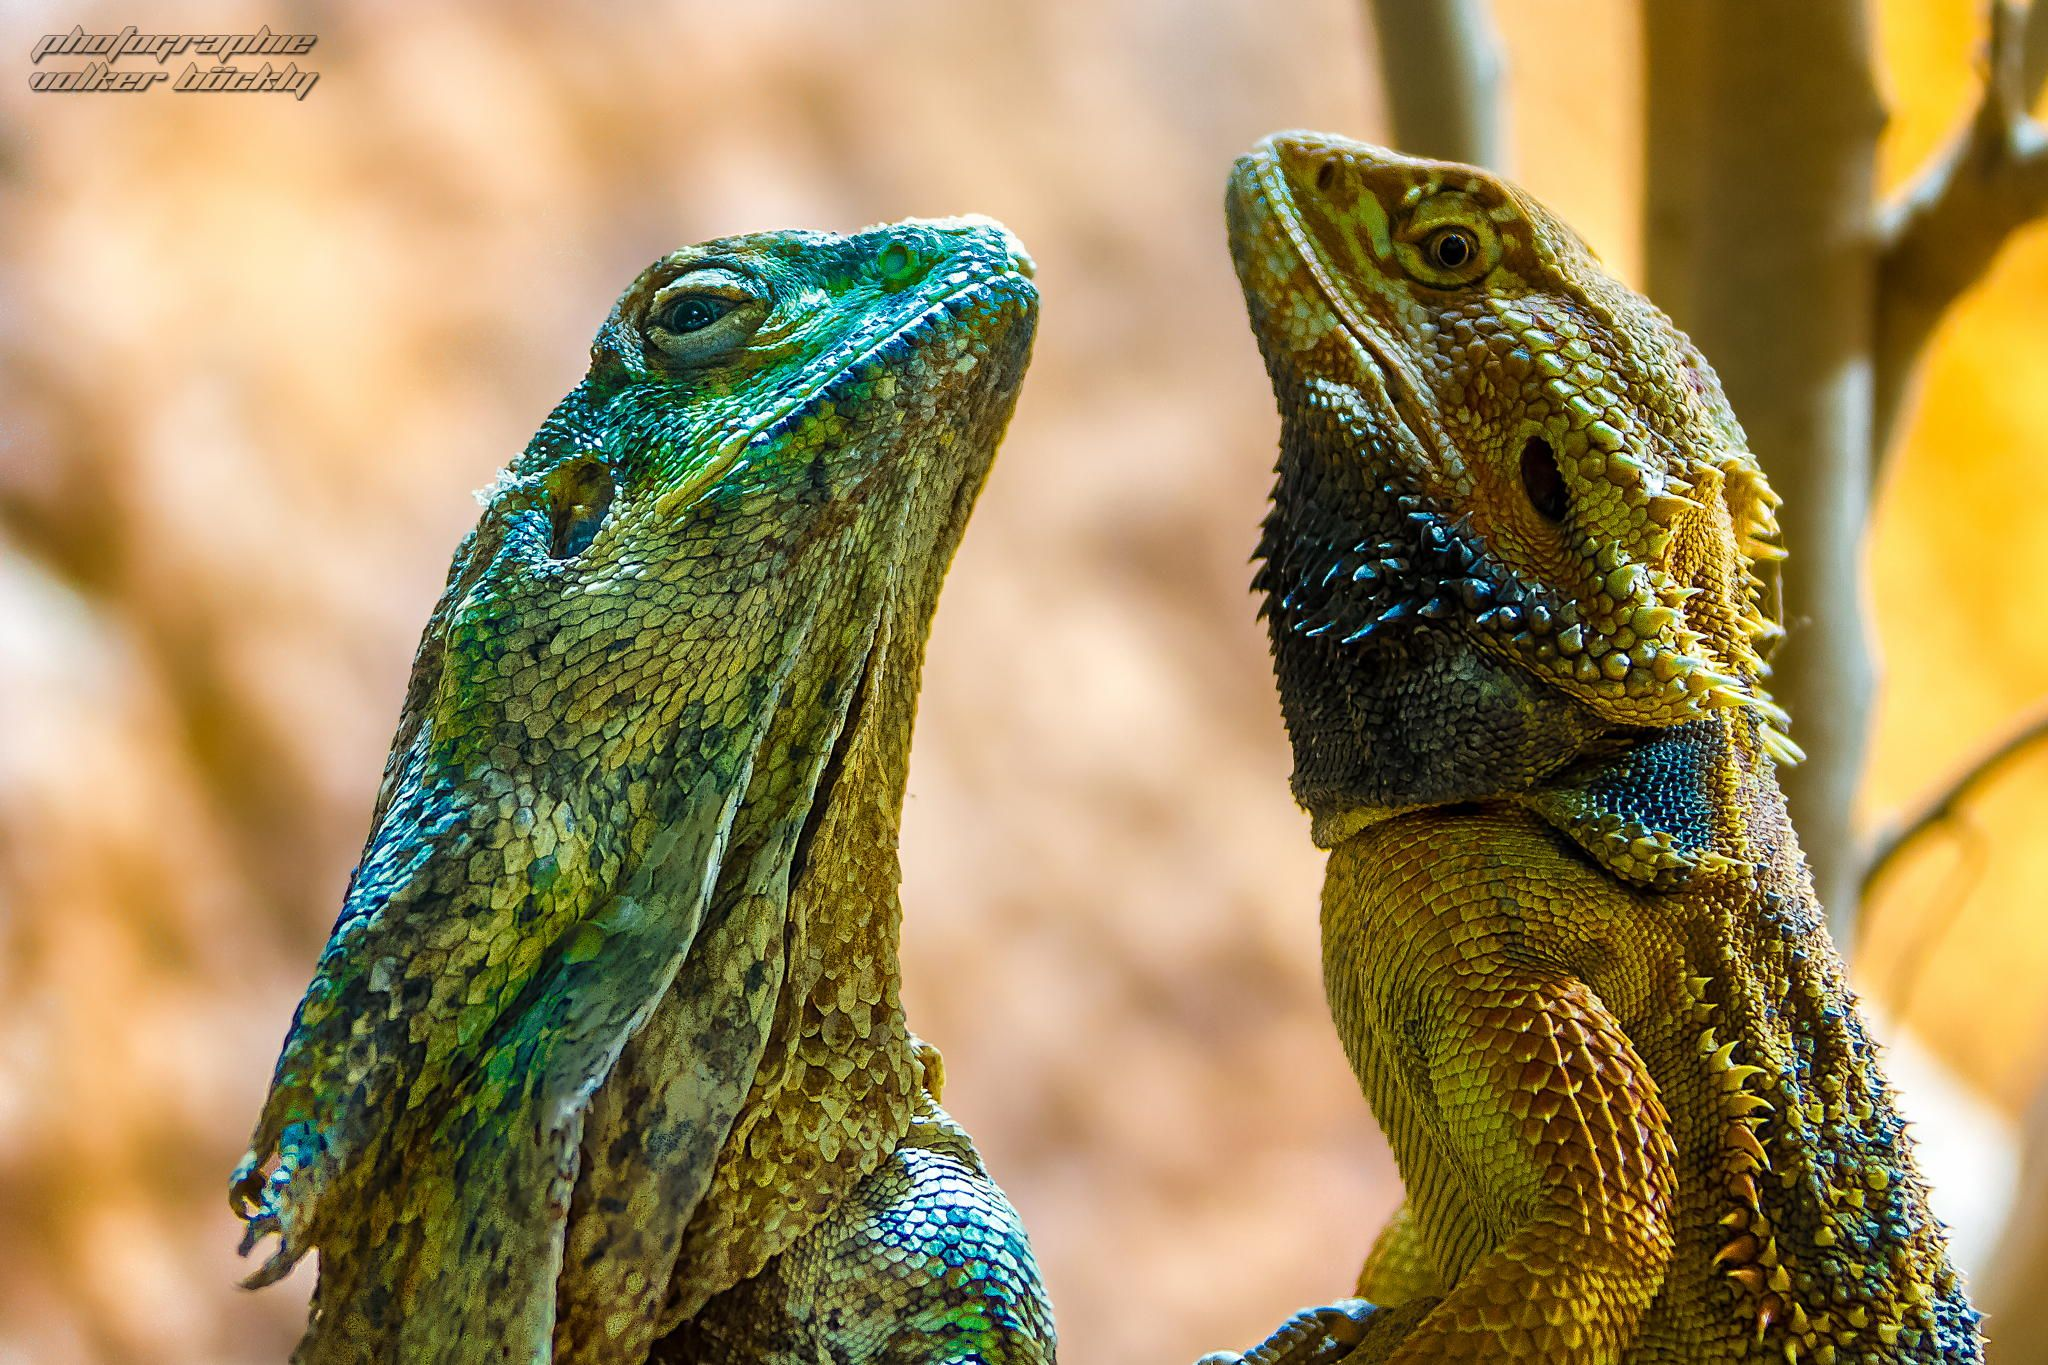 """Let´s Dance - Körperspannung "" Kragenechse & Bartagame  / Collar Lizard & Bearded Dragon by Volker Böckly on 500px"